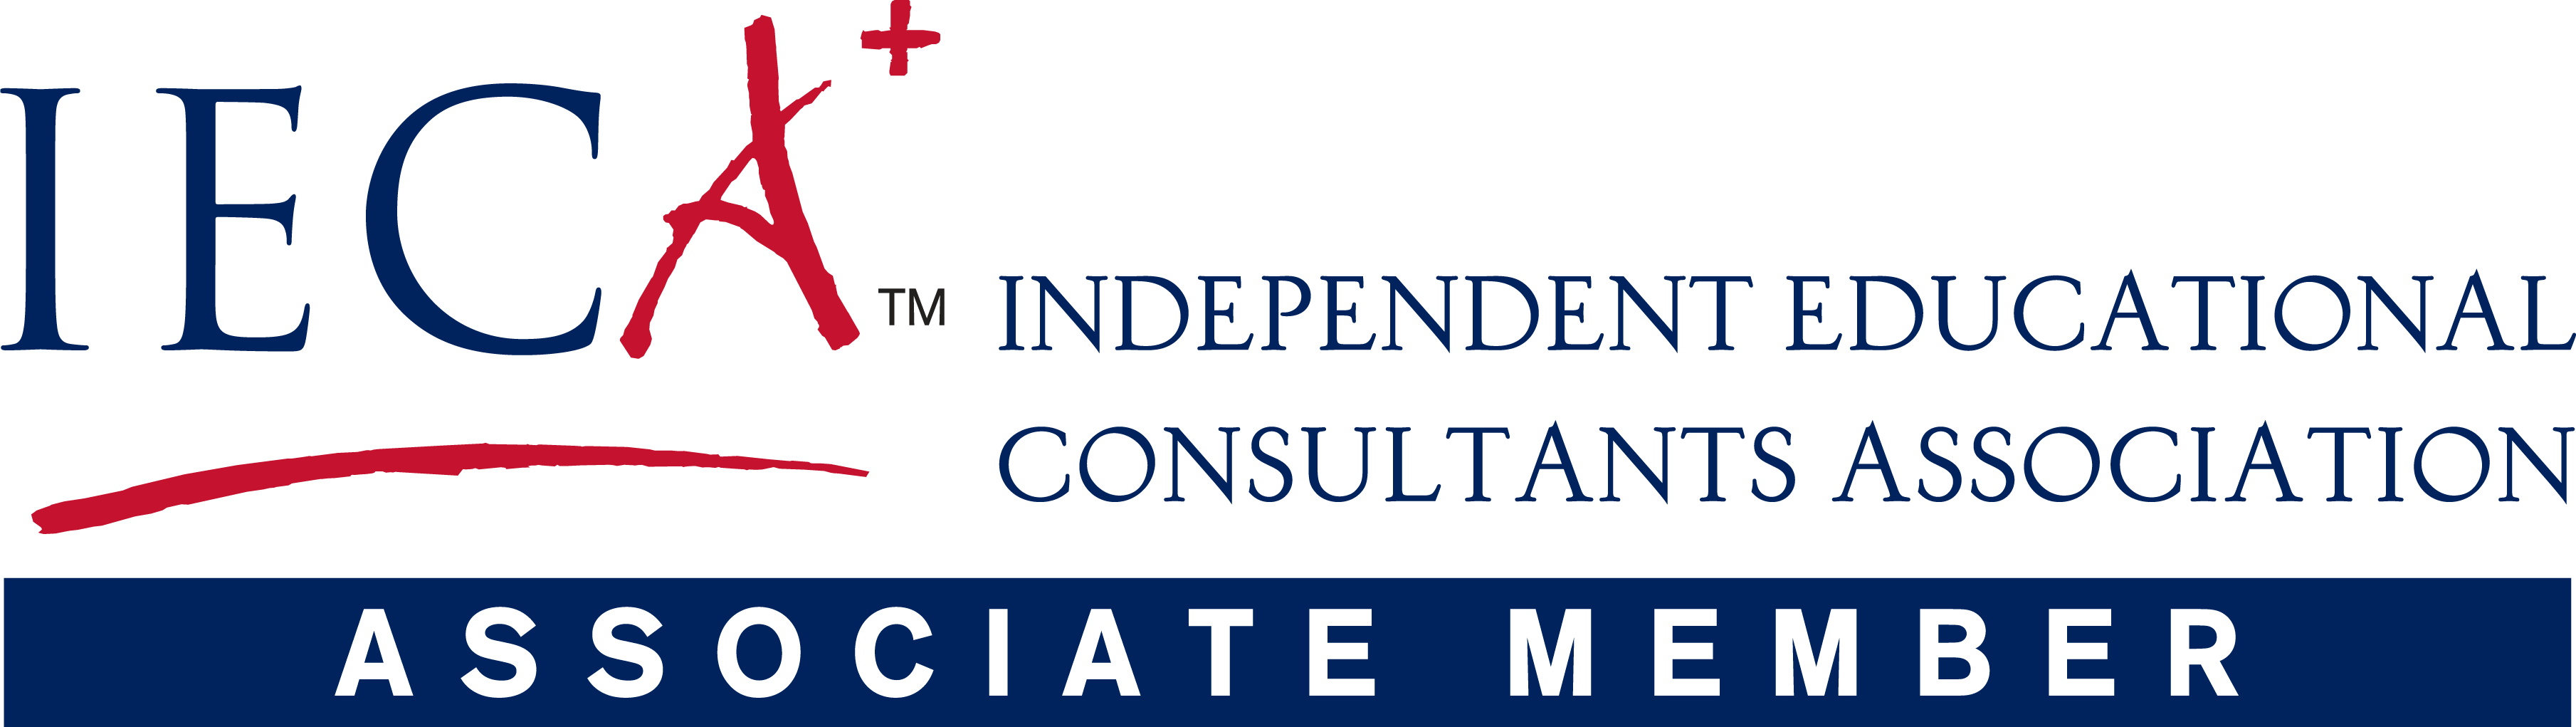 independent educational consultants association member